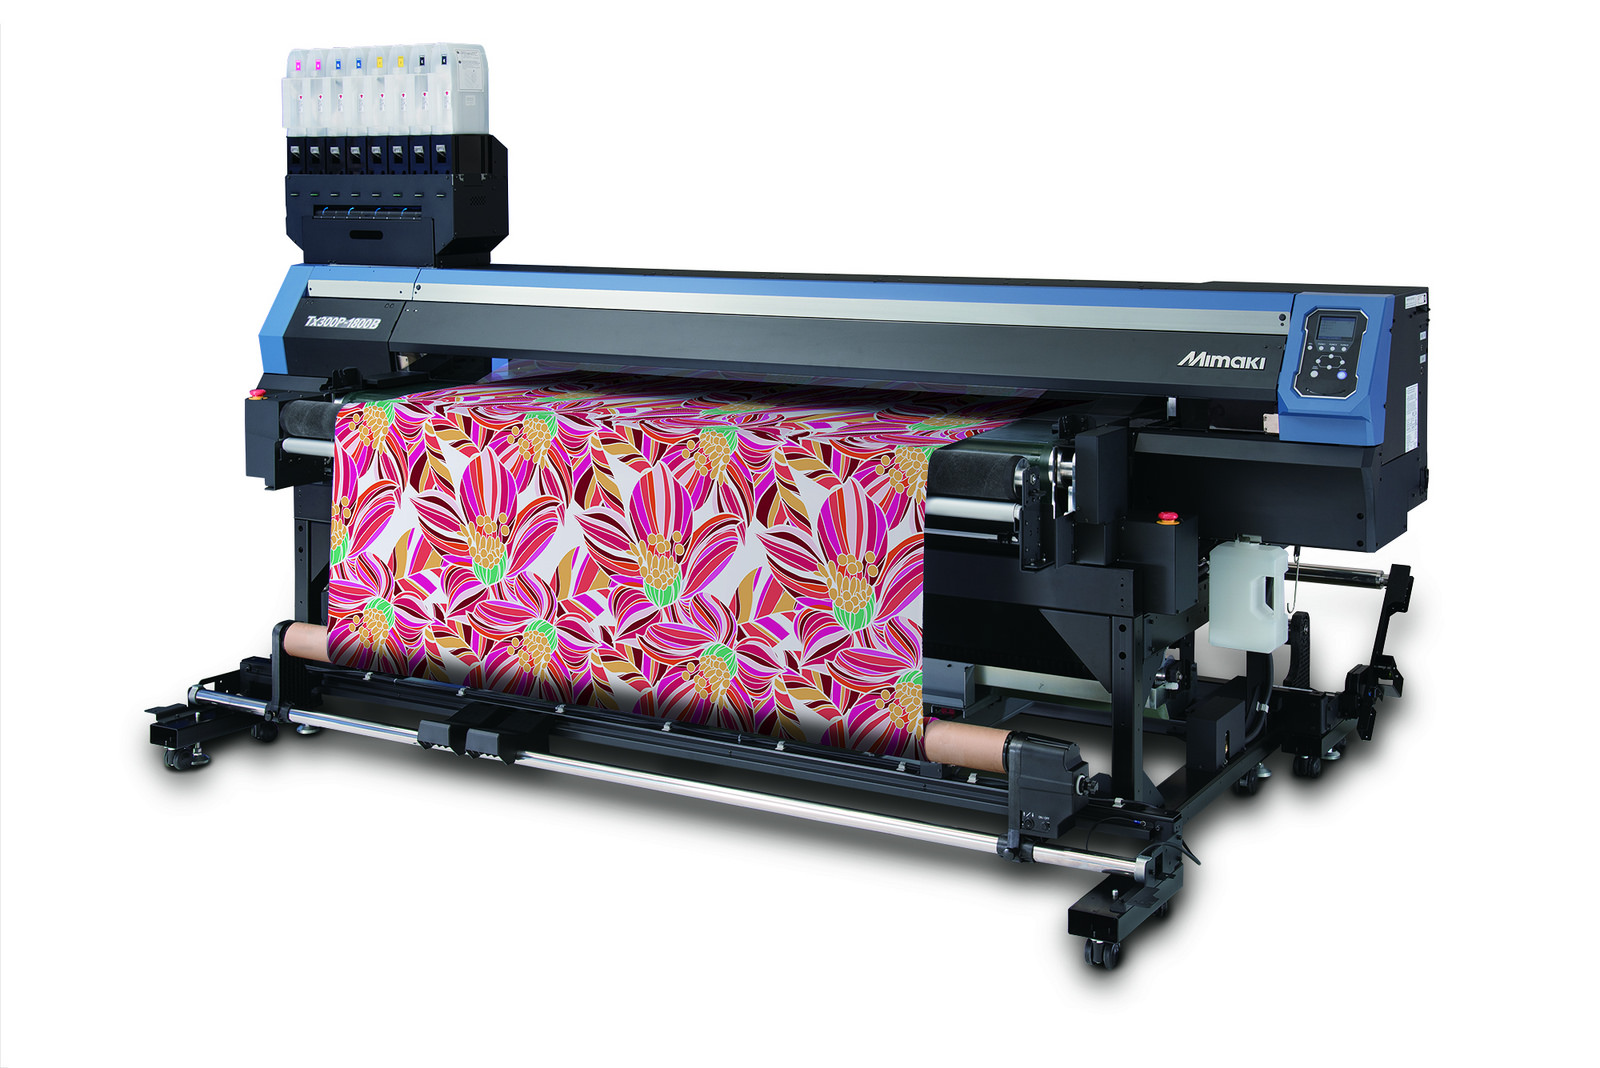 Mimaki's new Tx300P-1800B features a fabric transportation belt to aid feeding material during the print process.